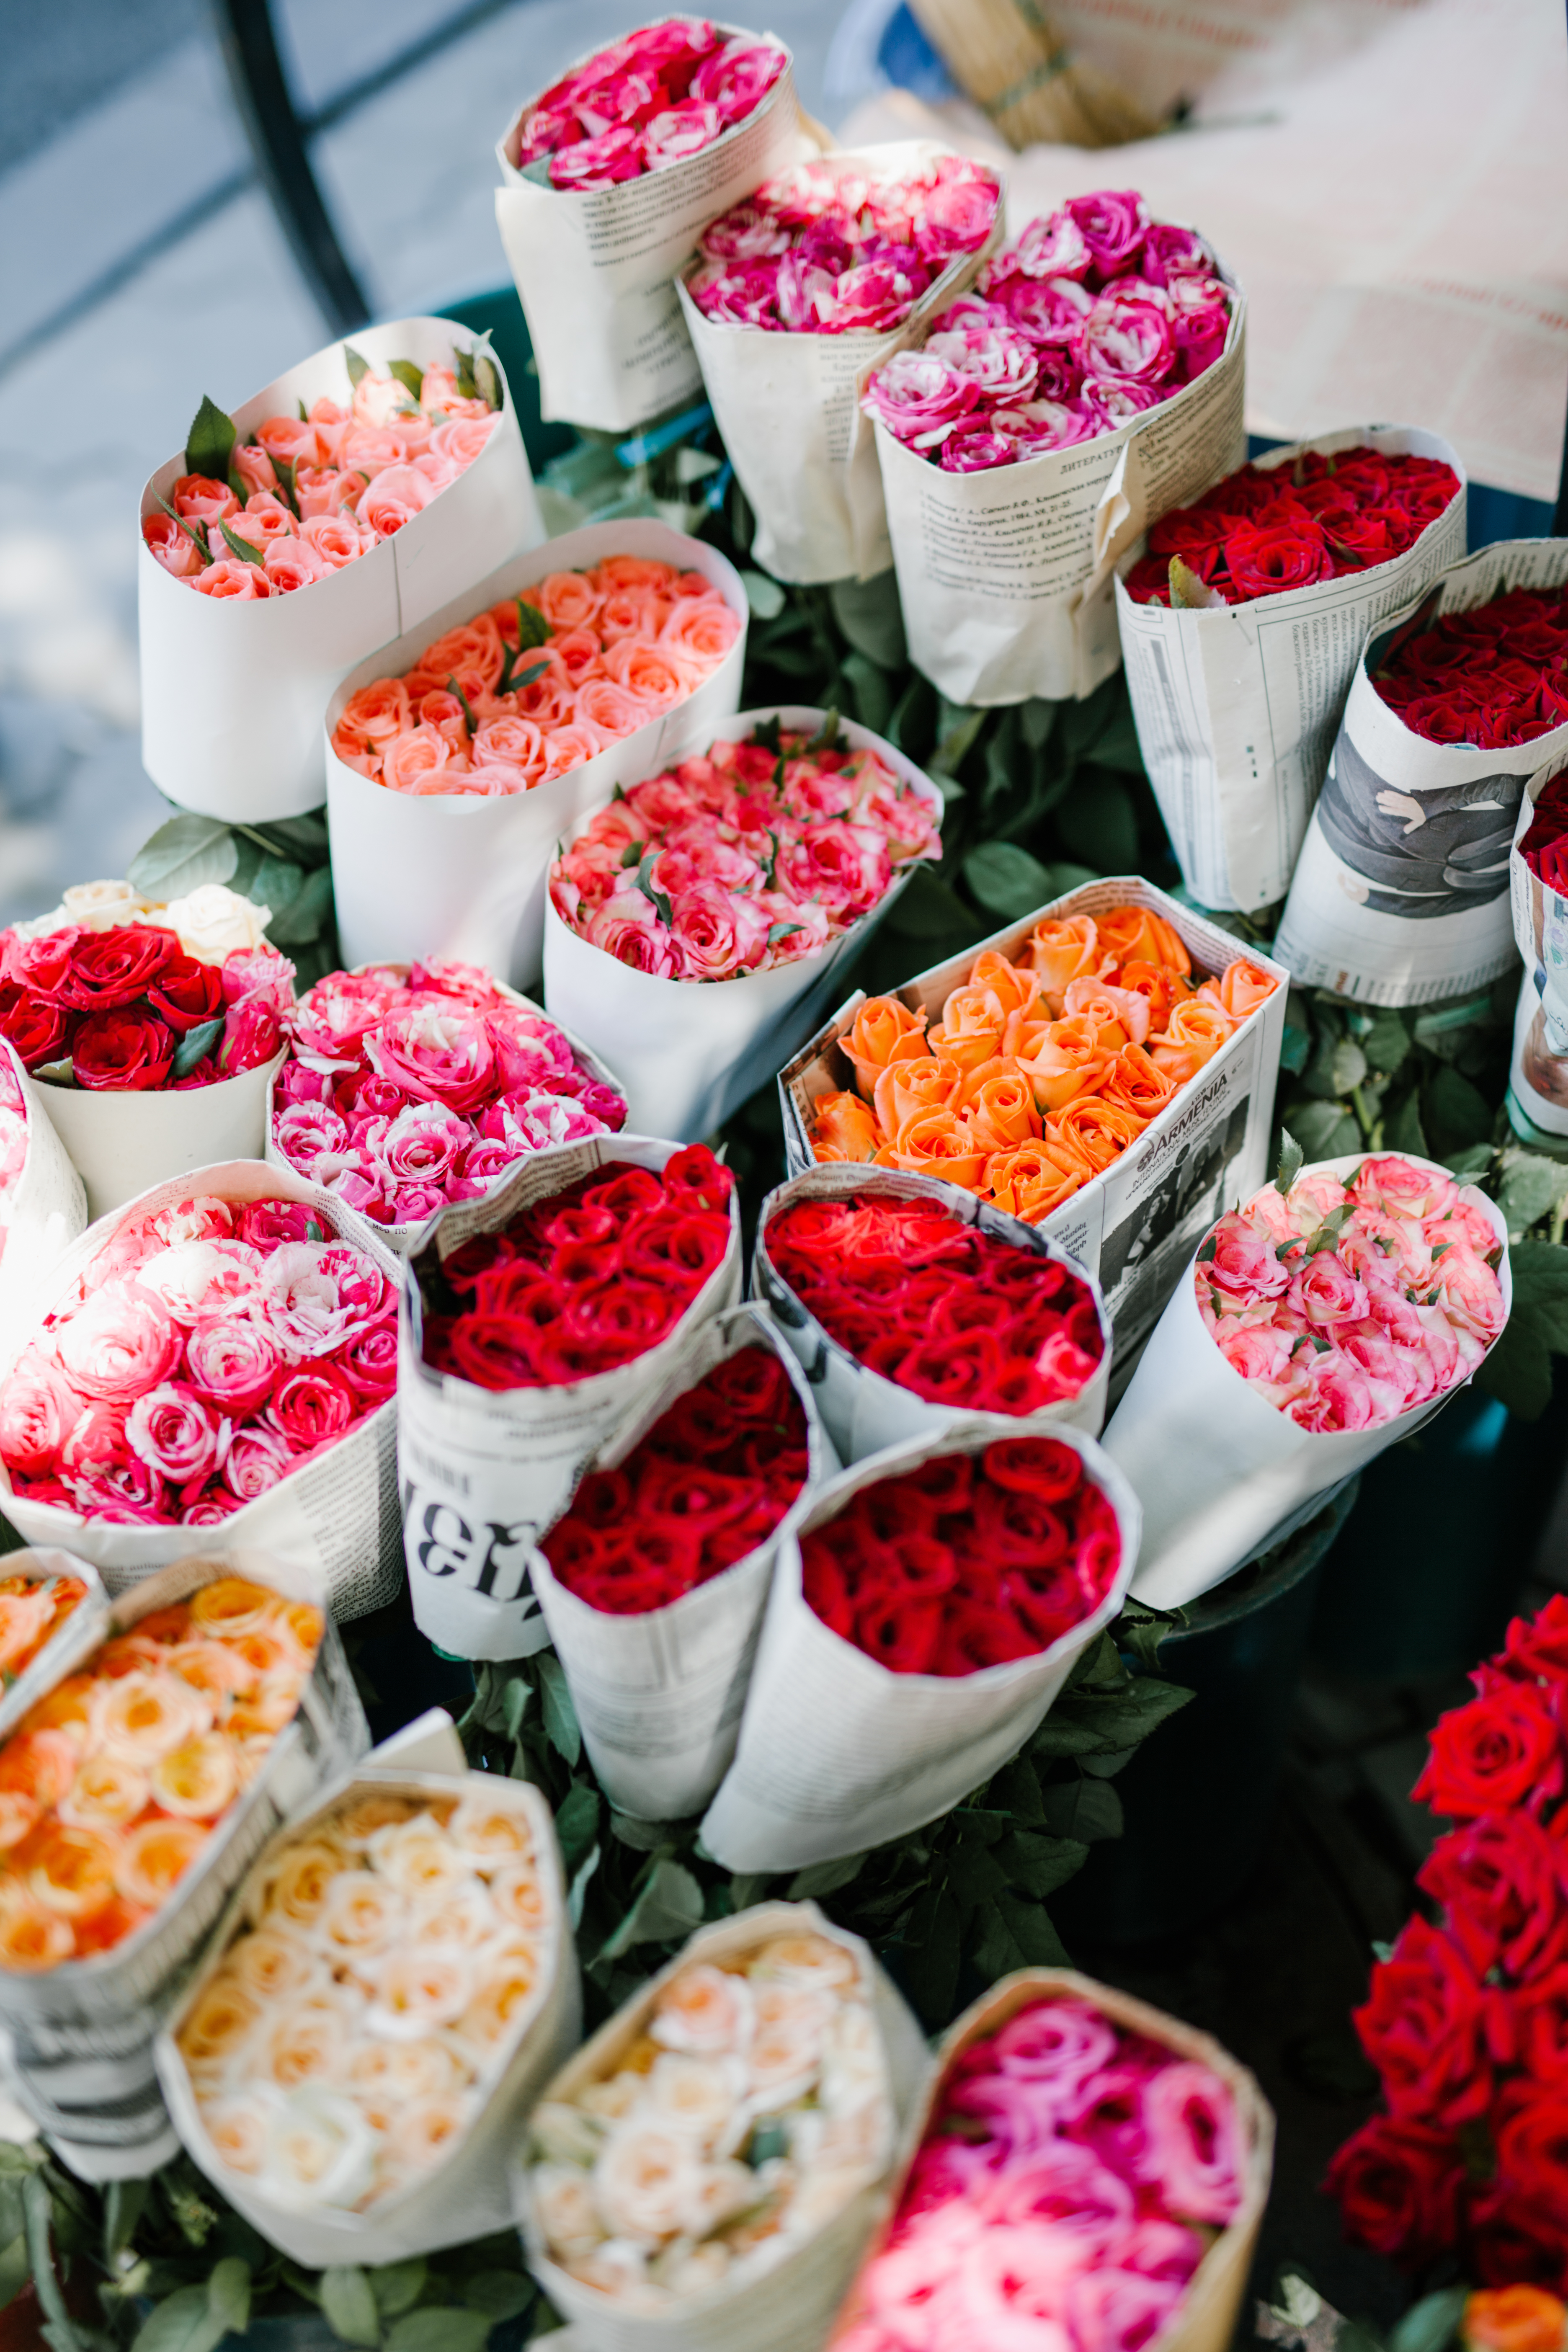 assorted bunches of roses in flower market